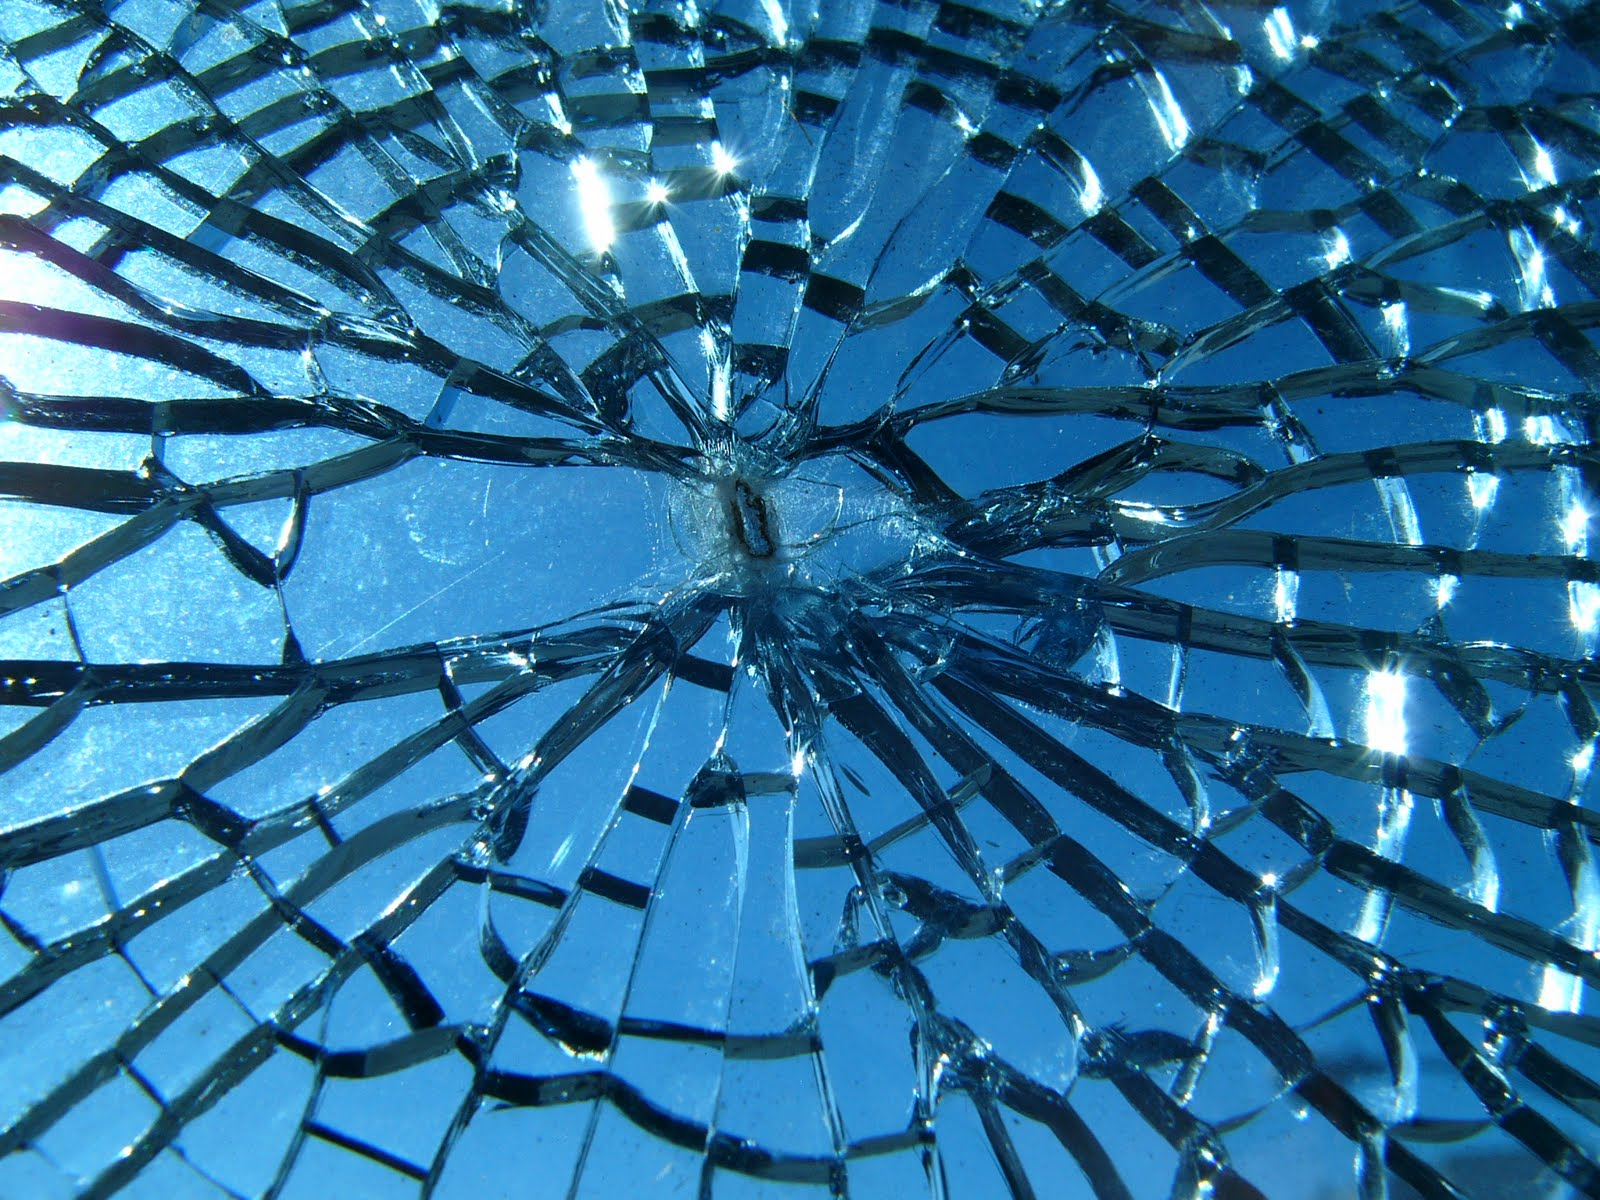 Patterns For Girls Wallpaper High Defintion Wallpapers Box Windows Shattered Glass High Definition